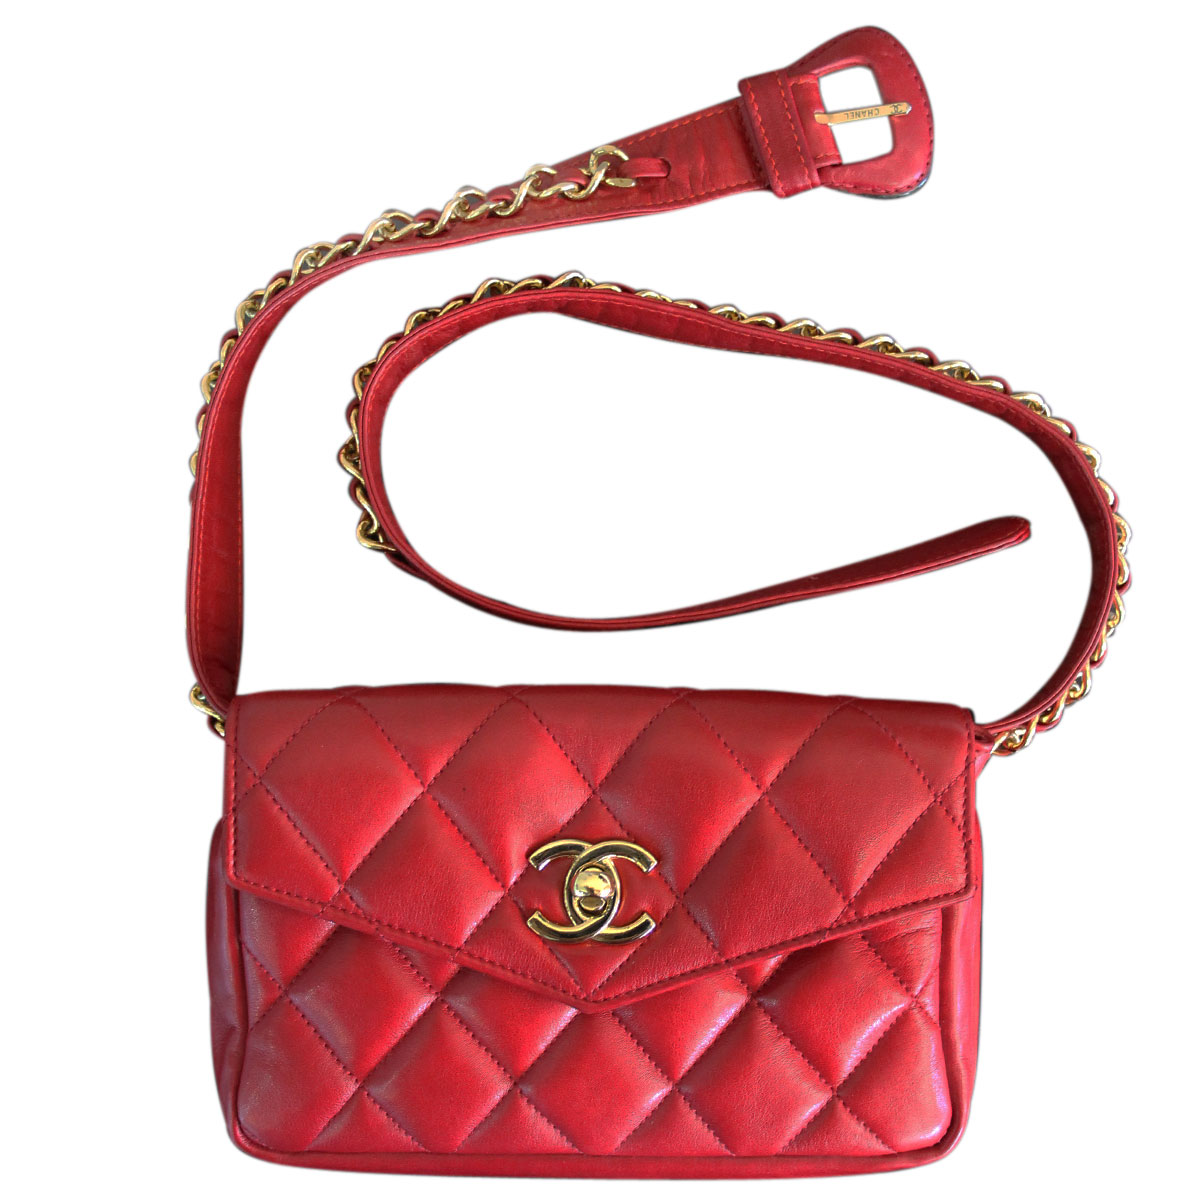 27db045132ad99 Chanel Red Quilted Lambskin GHW Vintage Gold Chain Waist Bag